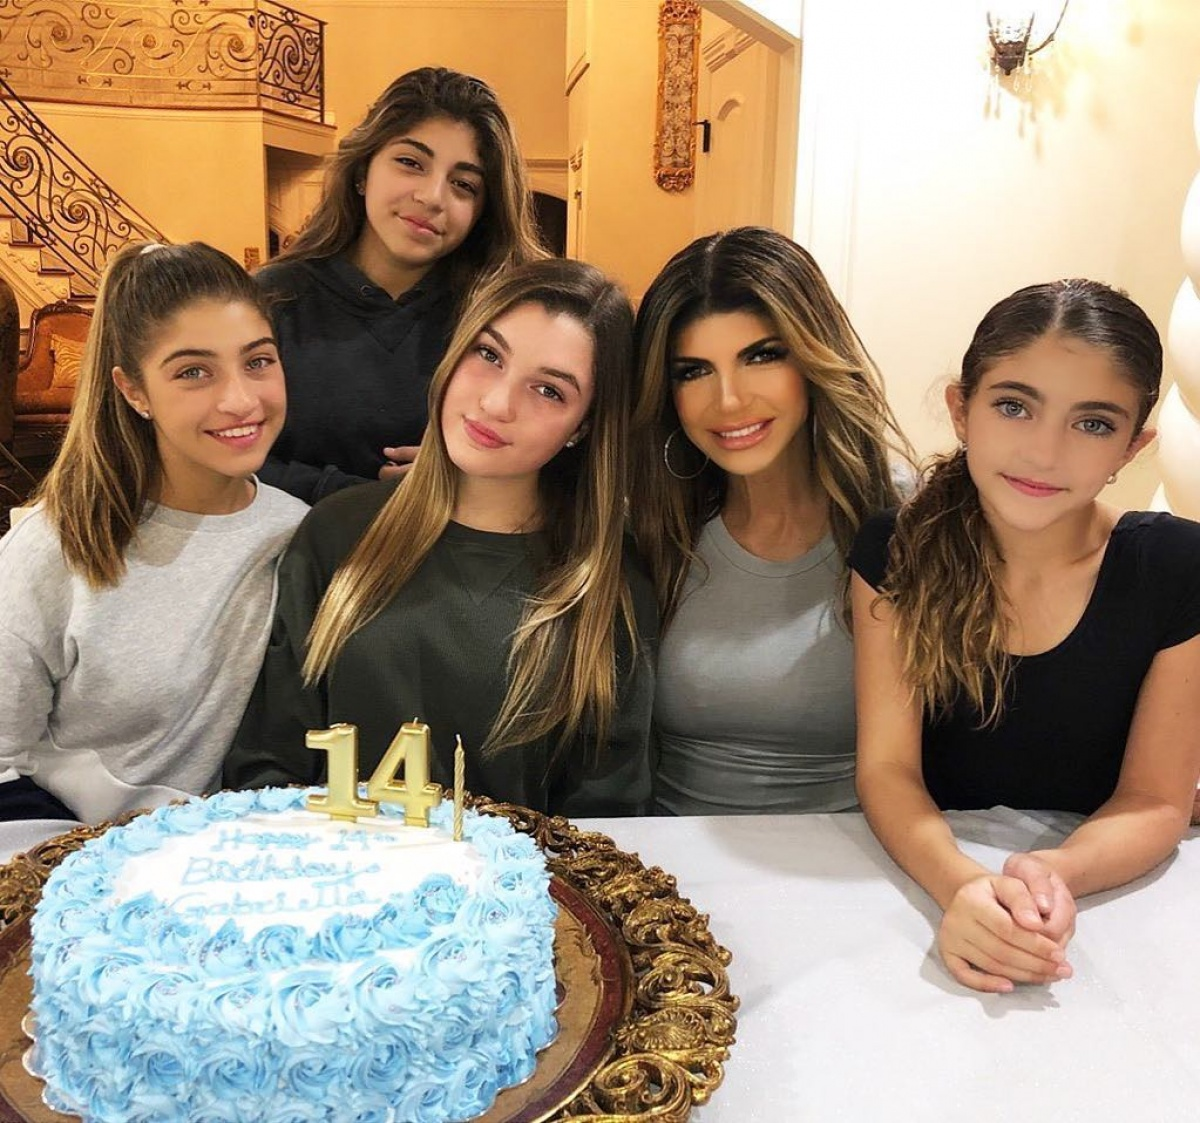 Joe Giudices Daughters Gia And Milania And Wife Teresa